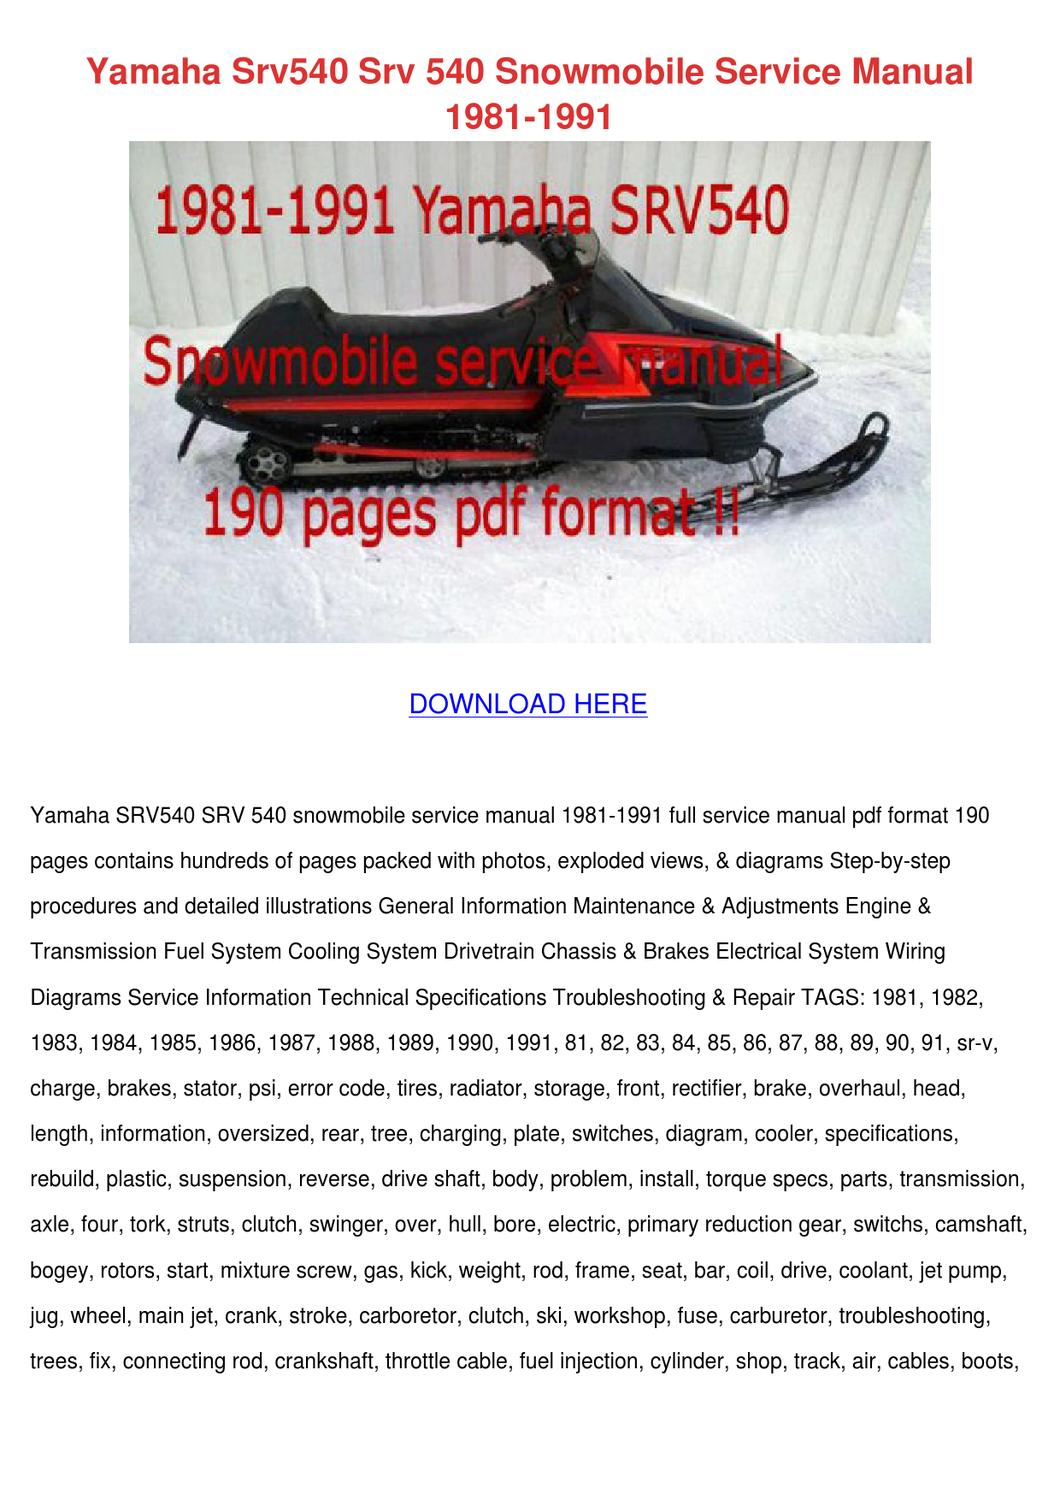 Snowmobile Trailer Wiring Diagram